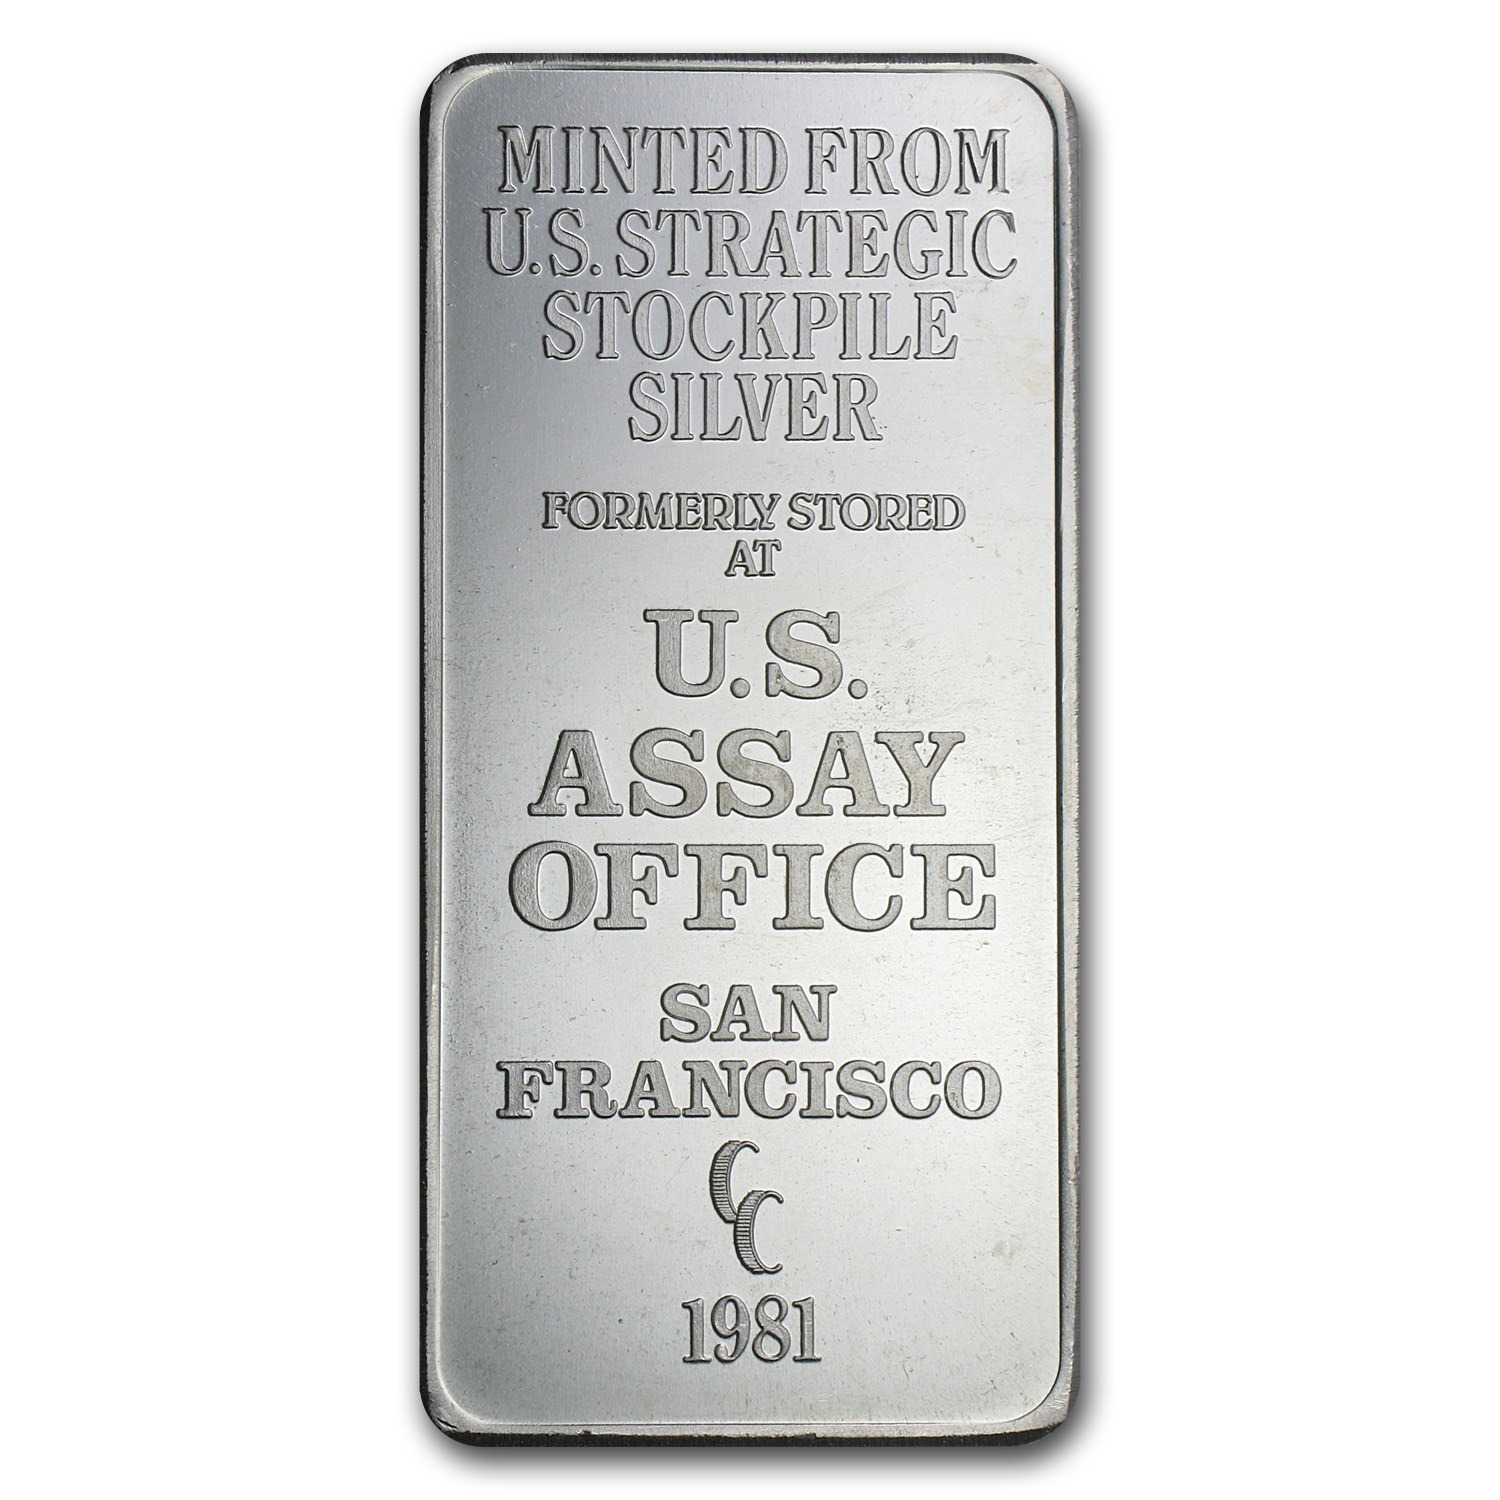 10 oz Silver Bars - U.S. Assay Office